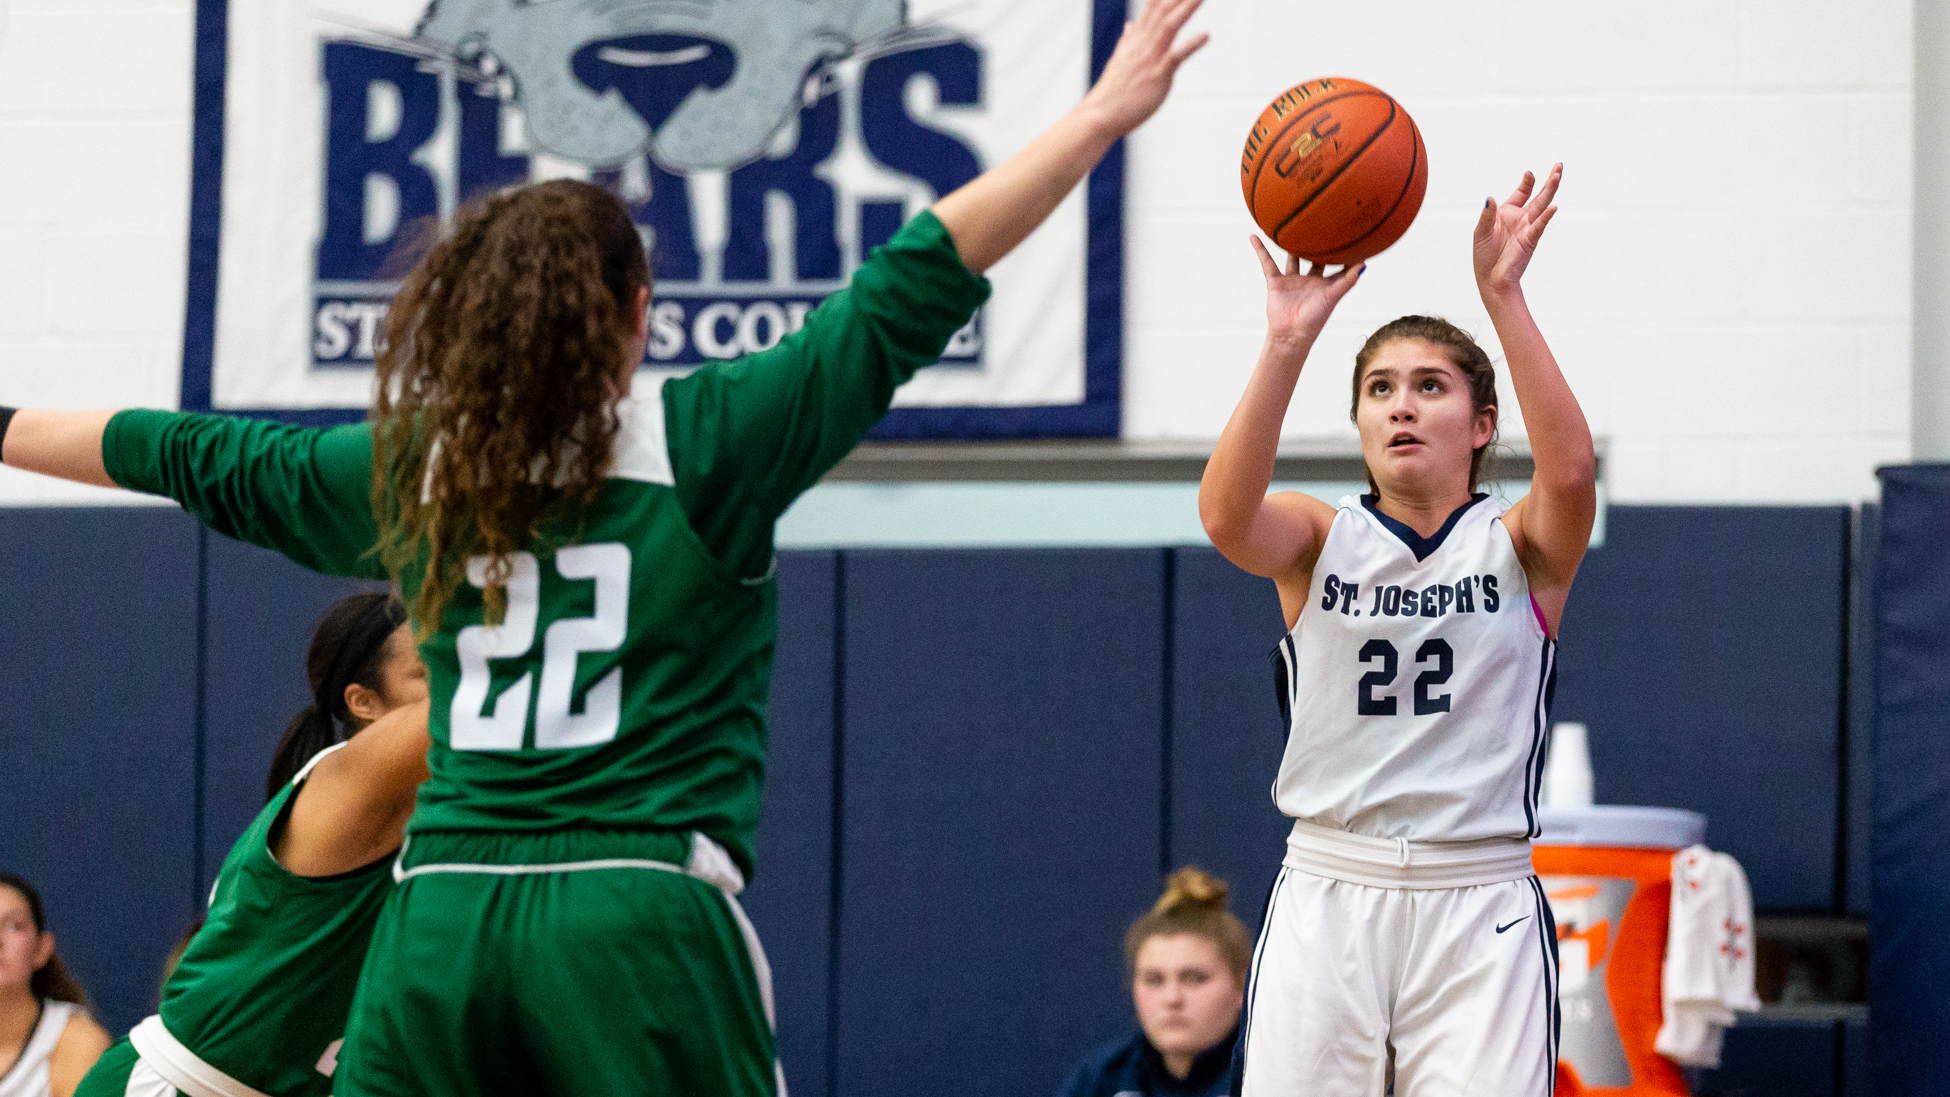 Women's Basketball Runs Away With 79-59 Win Over Farmingdale in League Opener